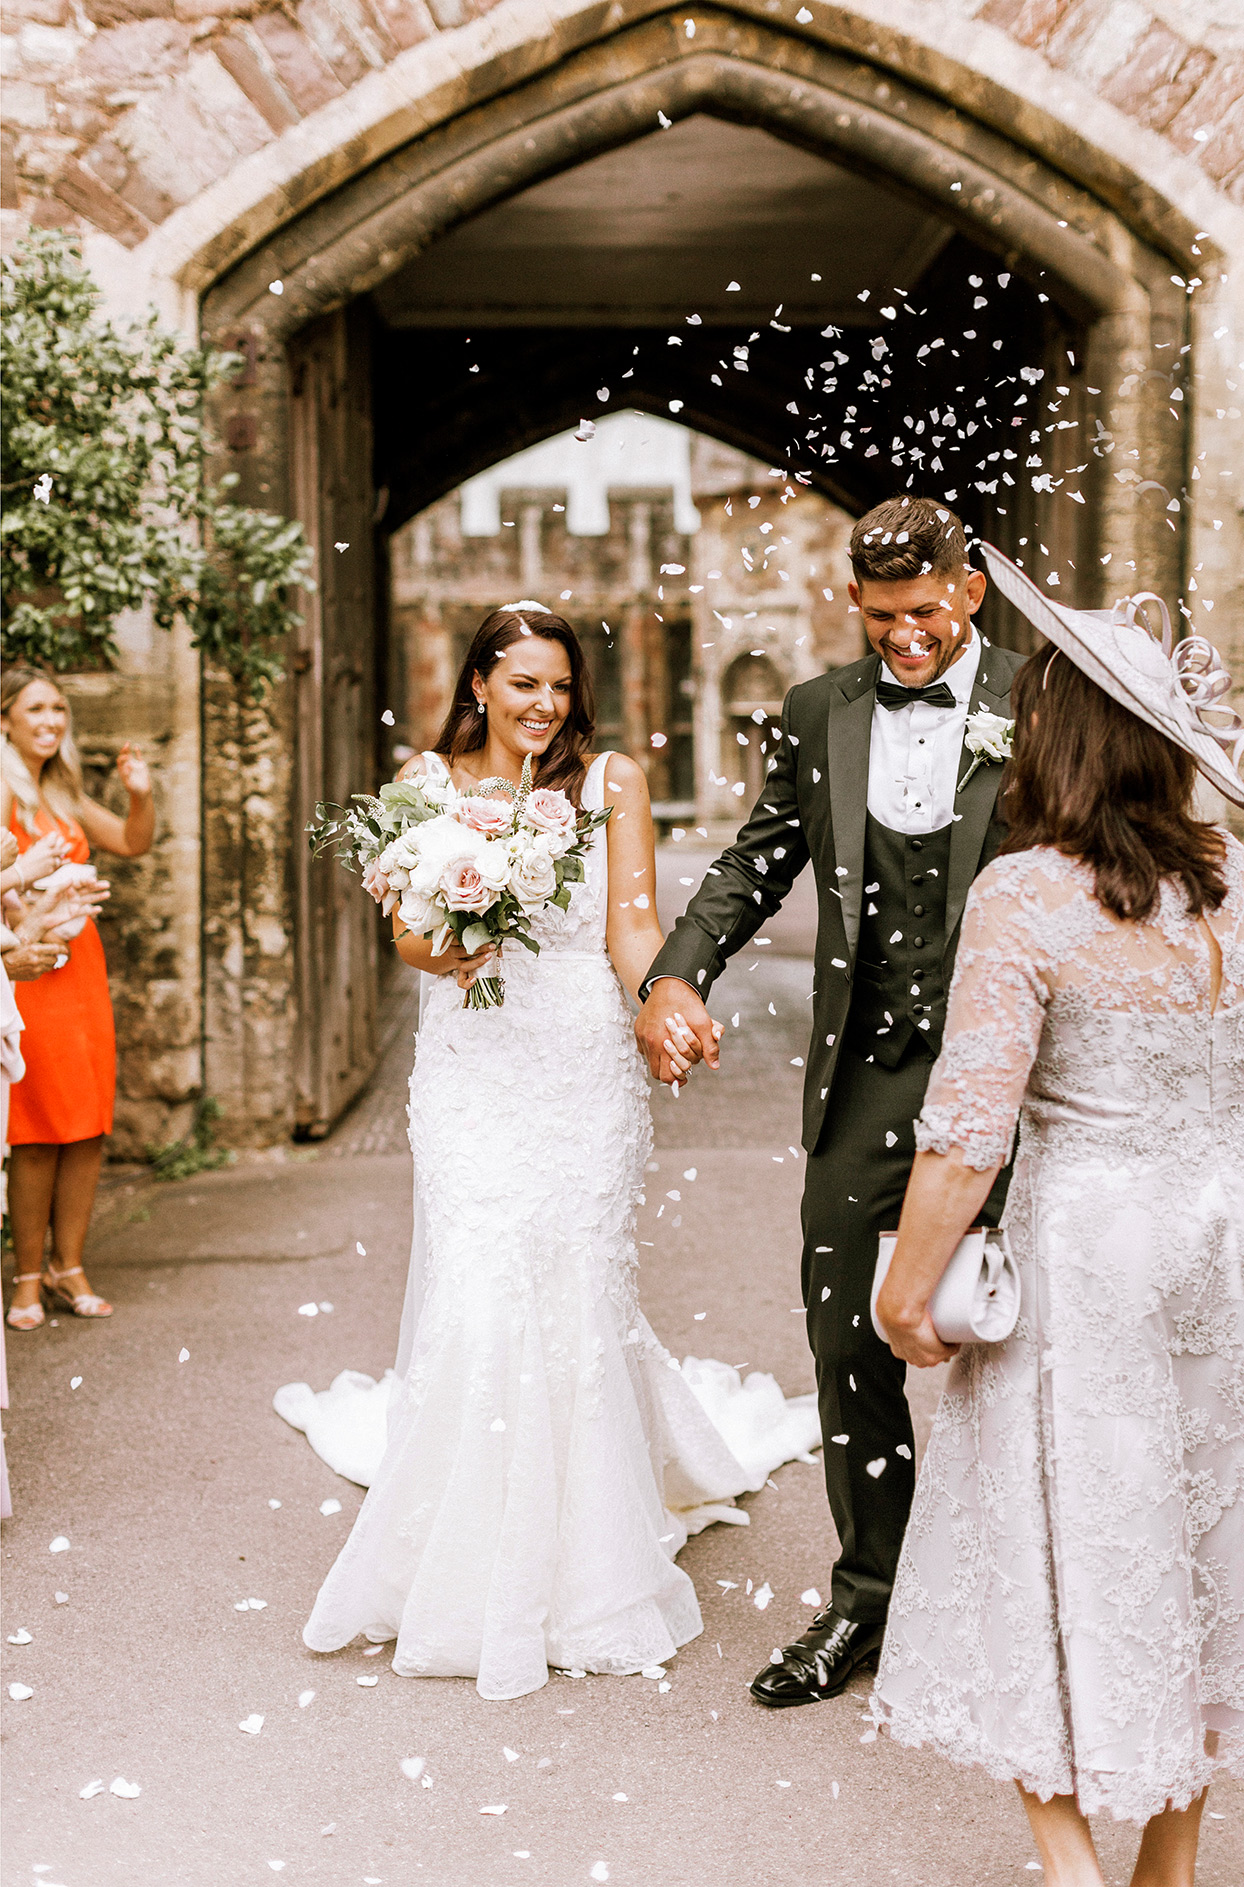 bride and groom holding hands during ceremony while being showered with confetti